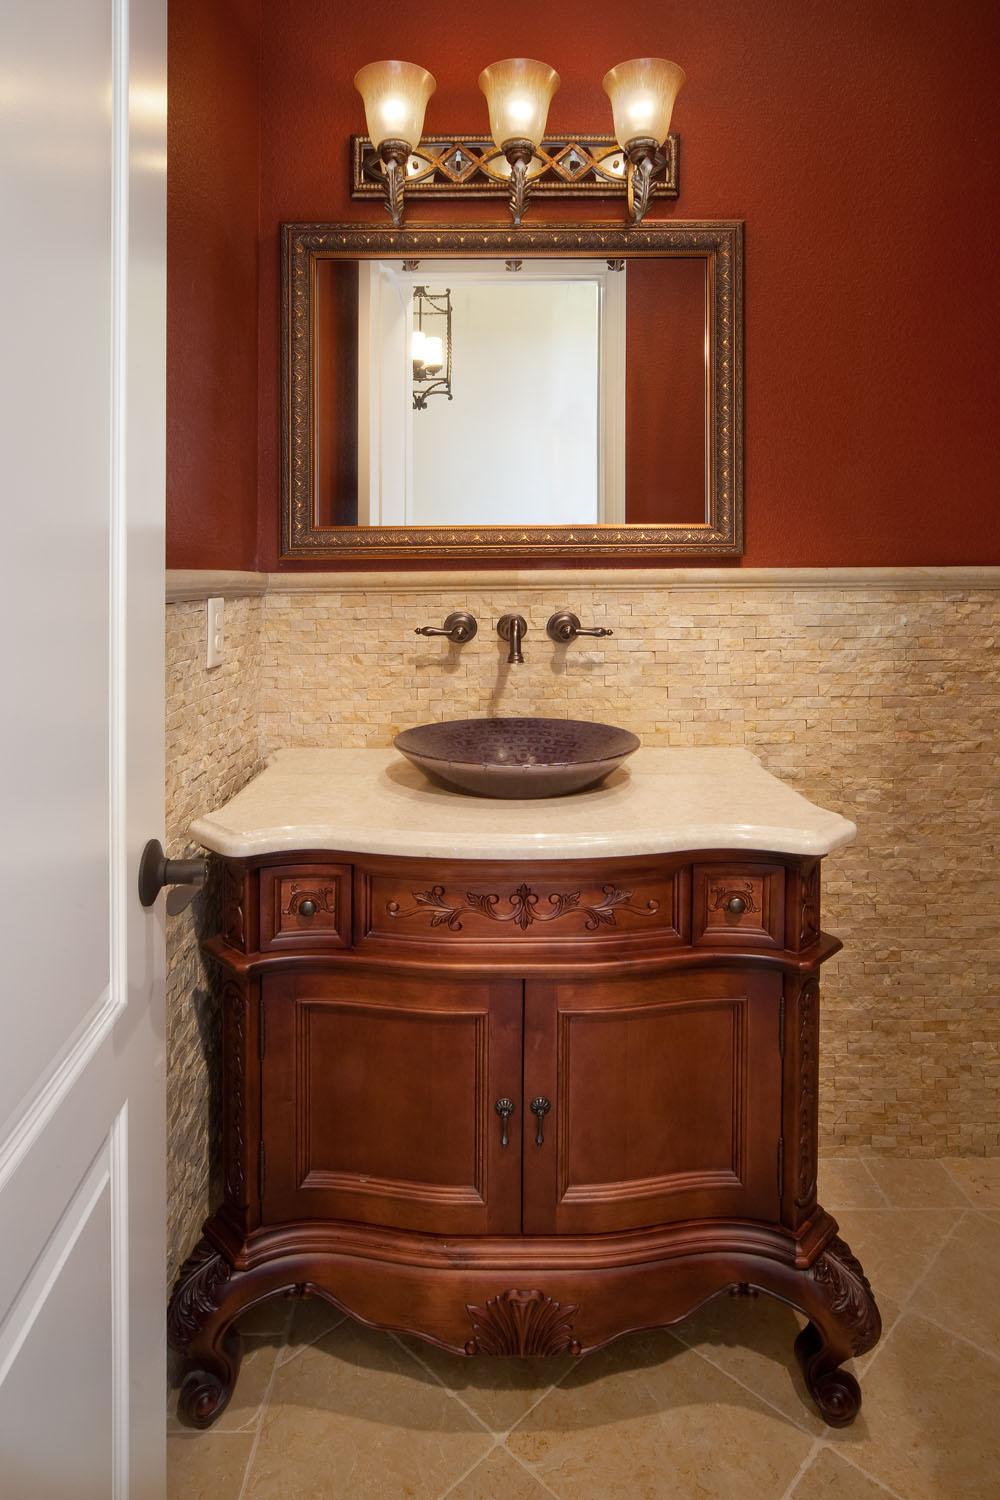 custom bathroom built by Orlando home builder Einheit Homes